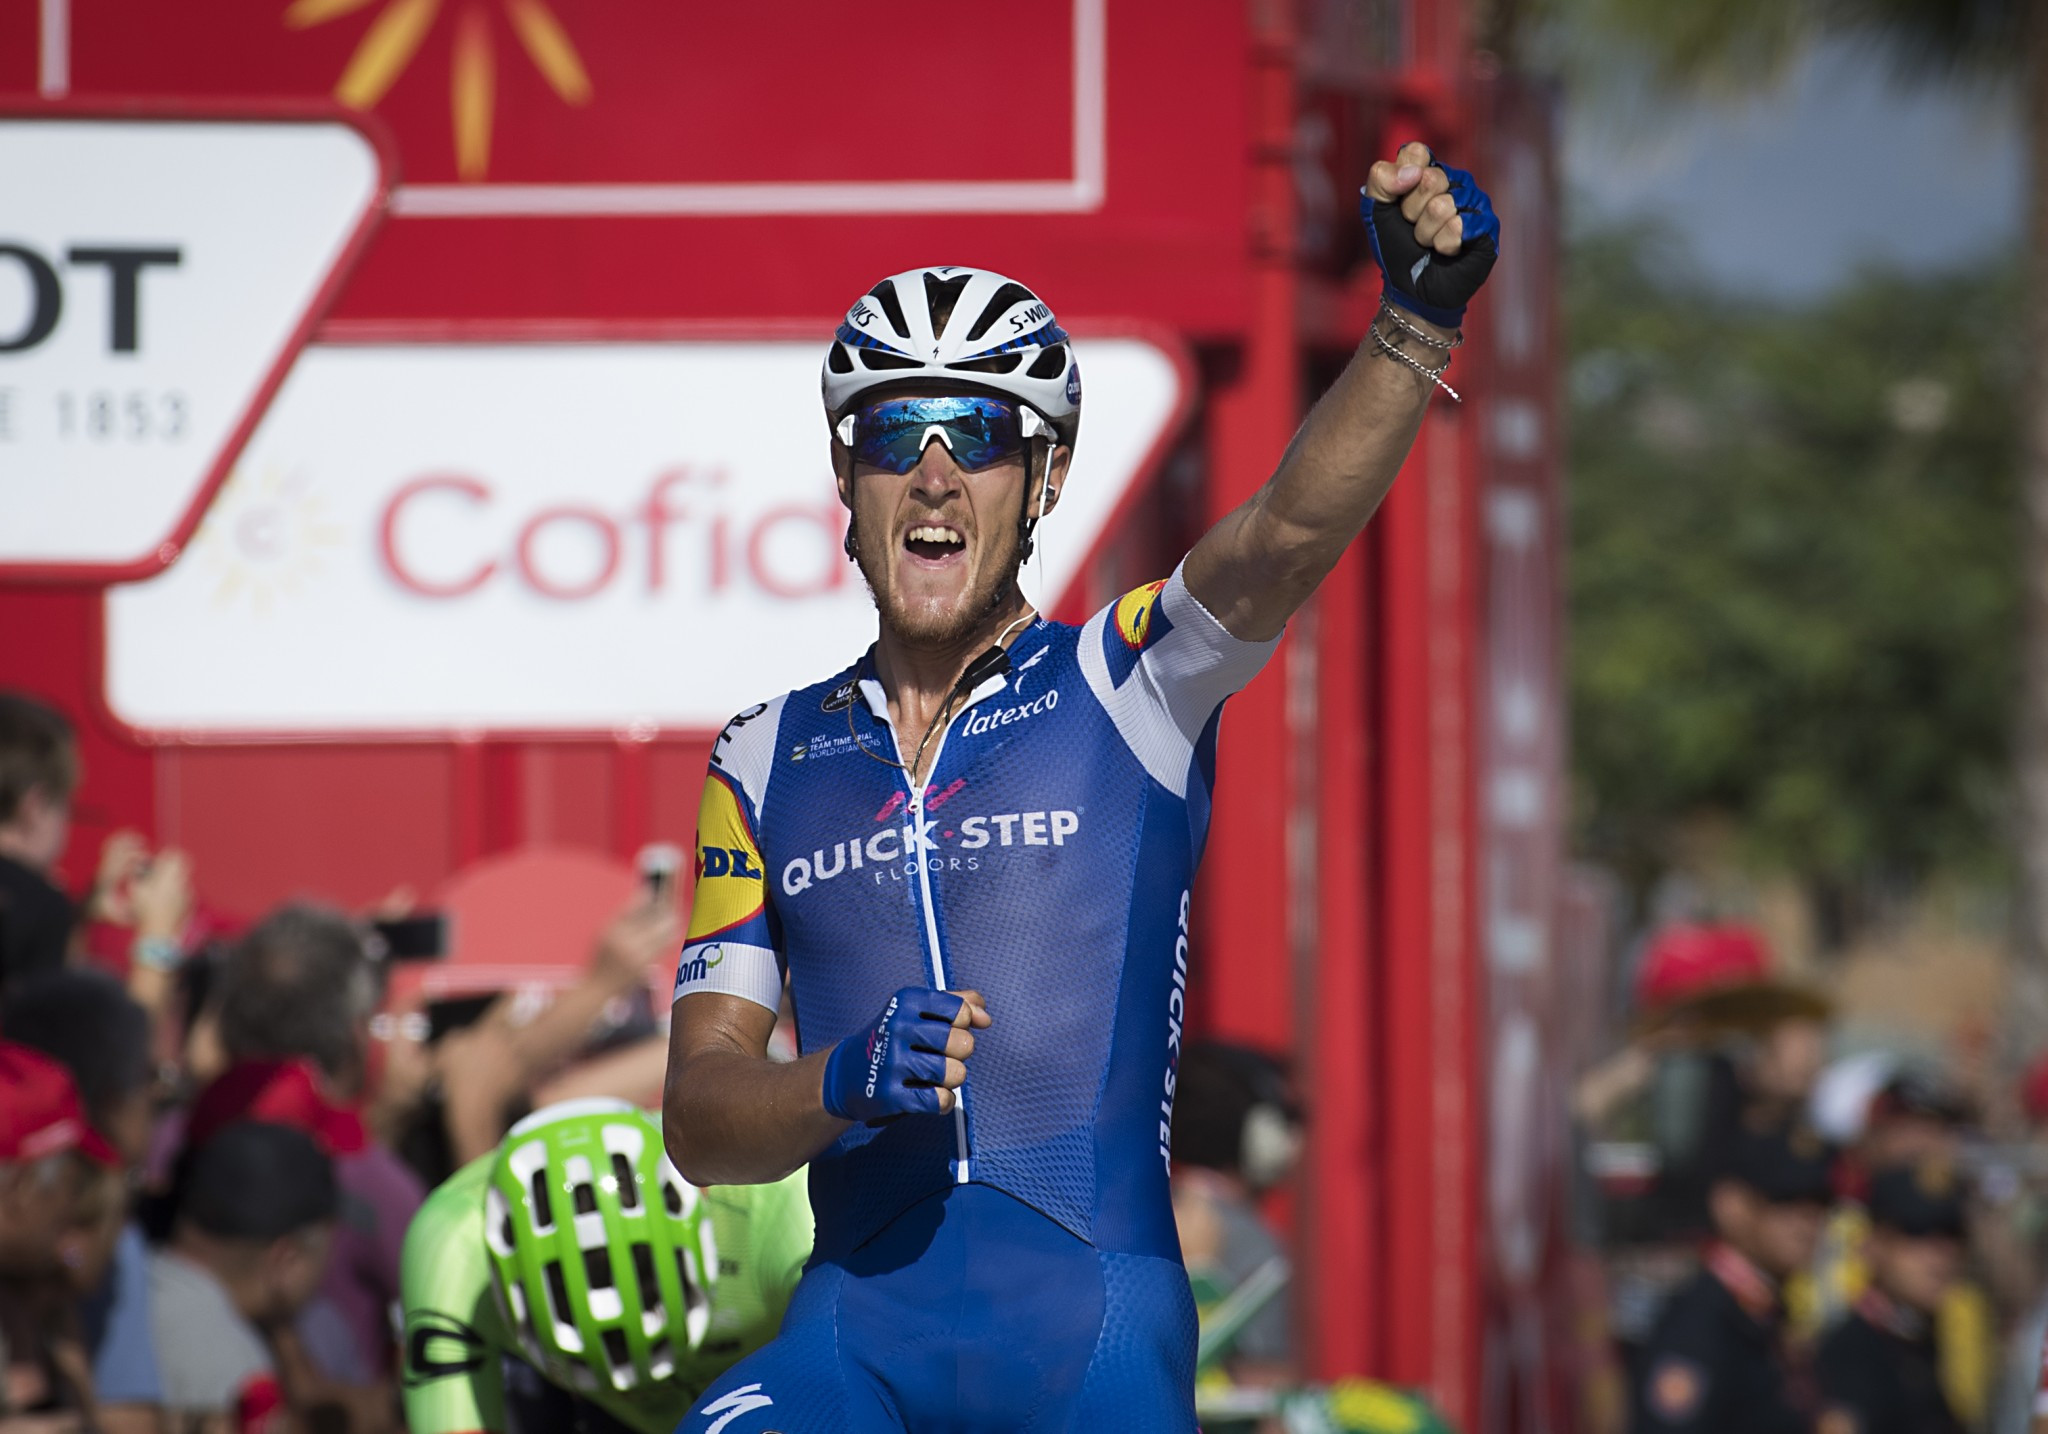 Trentin wins Vuelta stage four as Froome keeps hold of lead